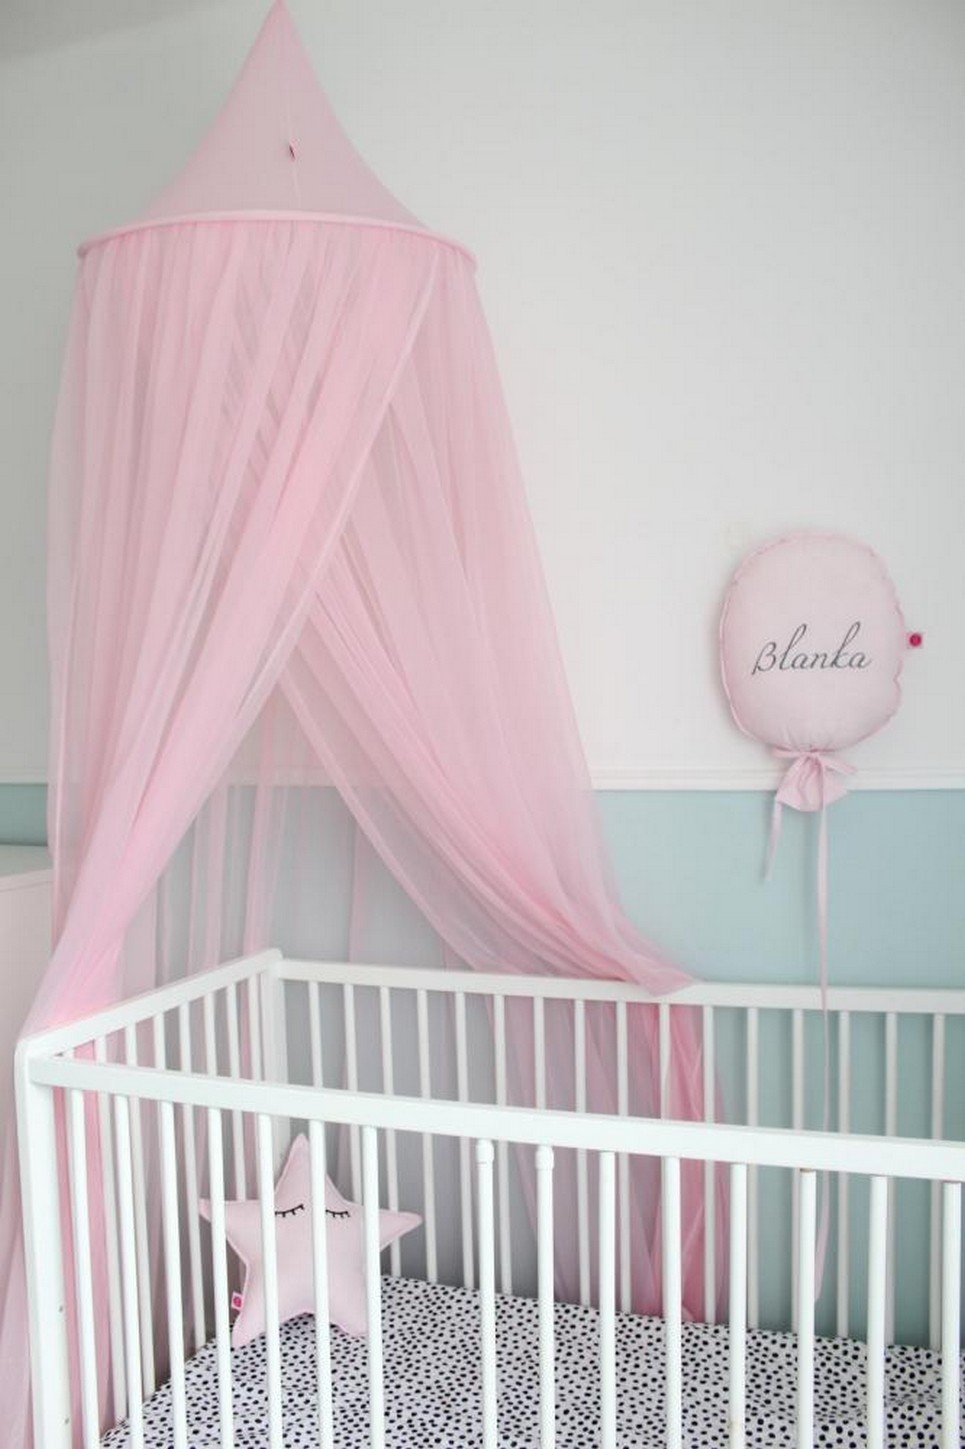 Pink Flowing Children's Bed Canopy